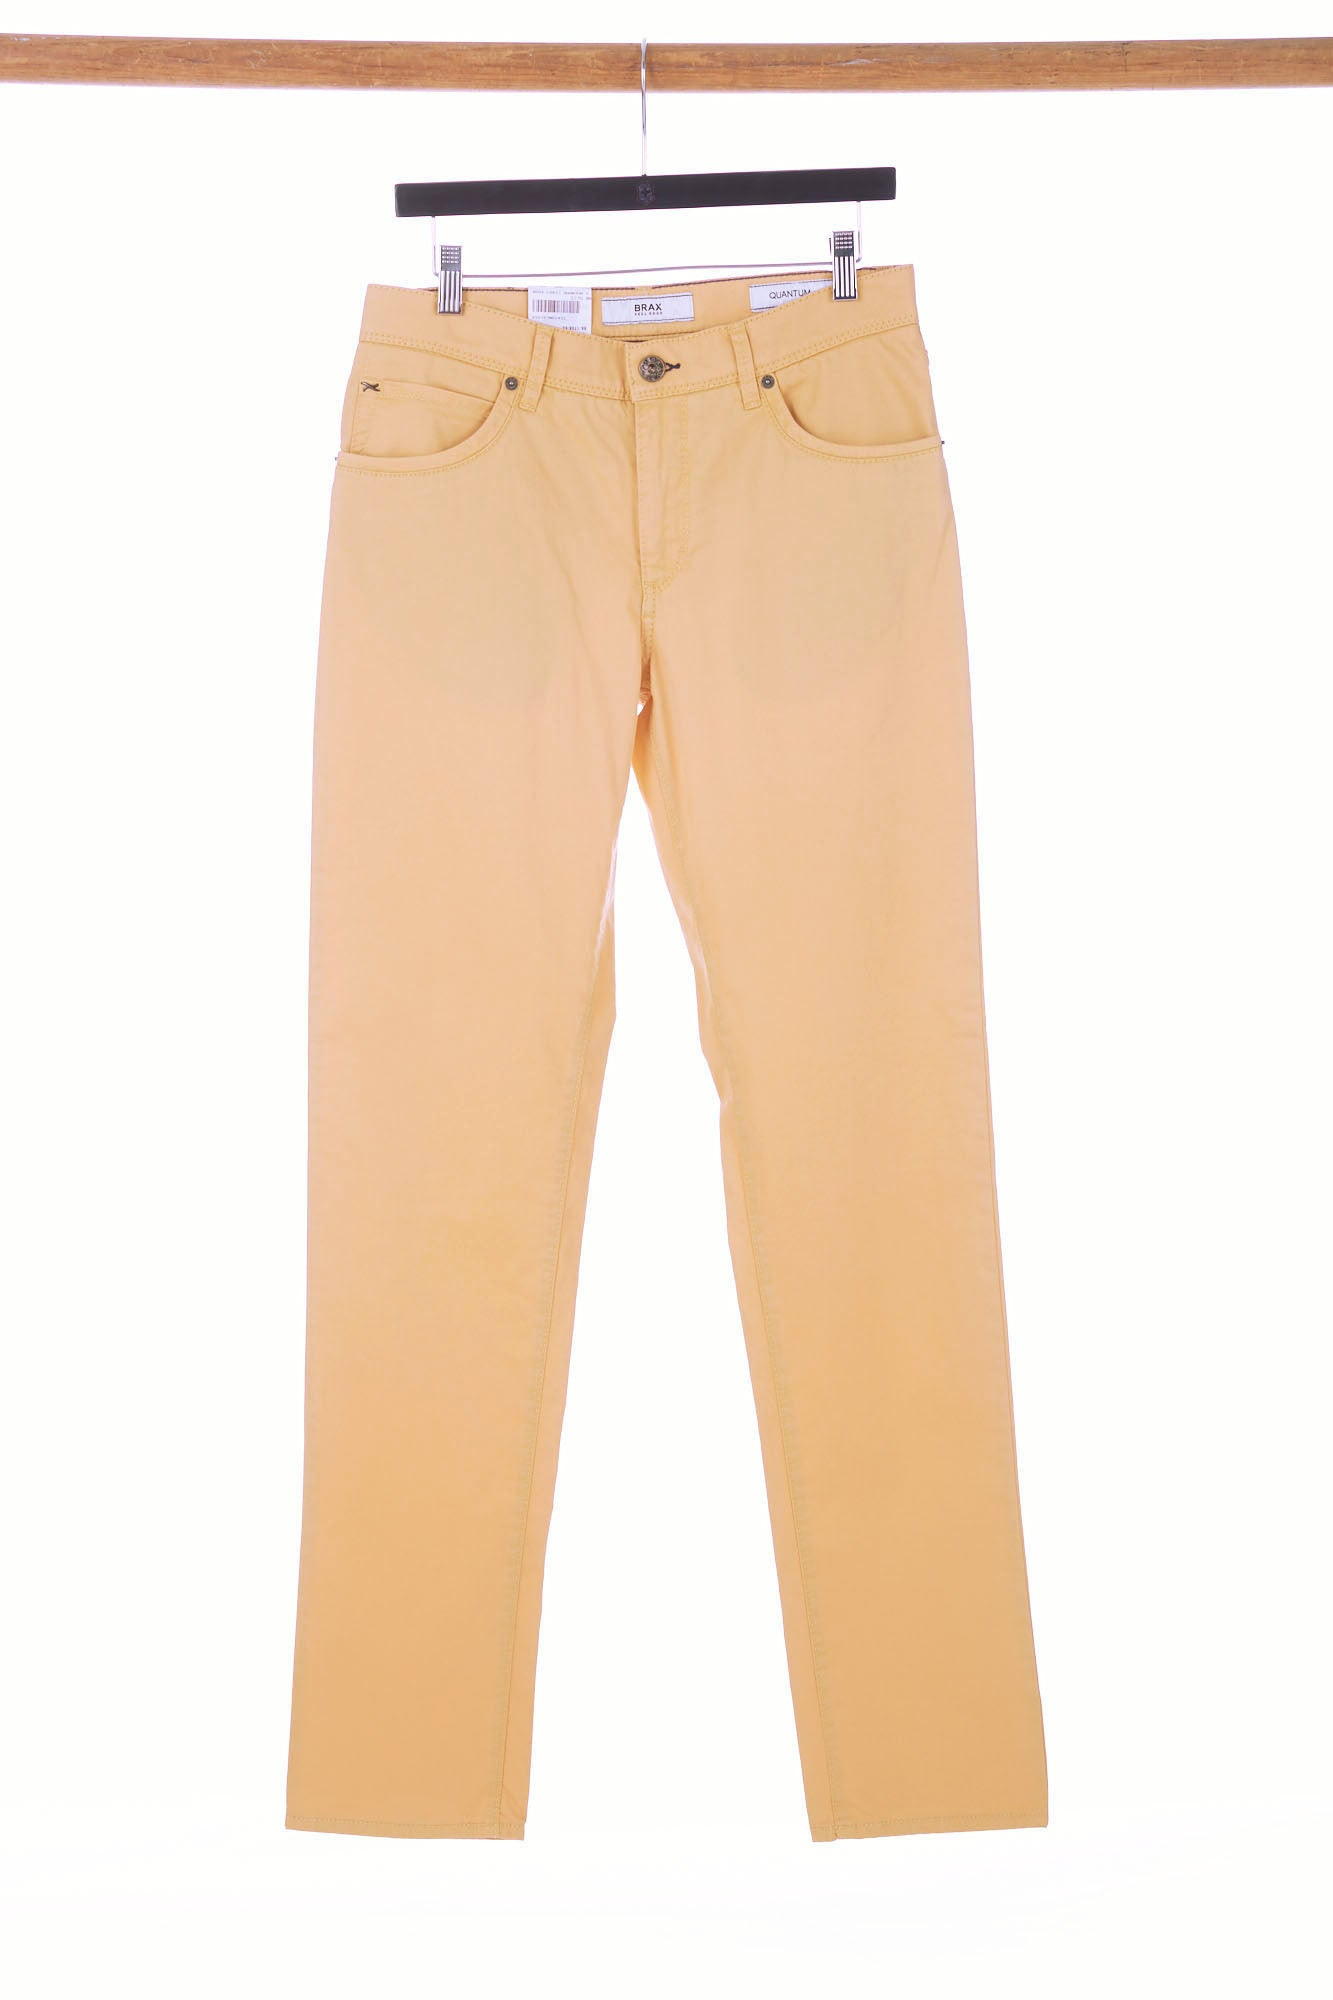 Brax Yellow 5-Pocket Cotton Pants Cadiz Fit